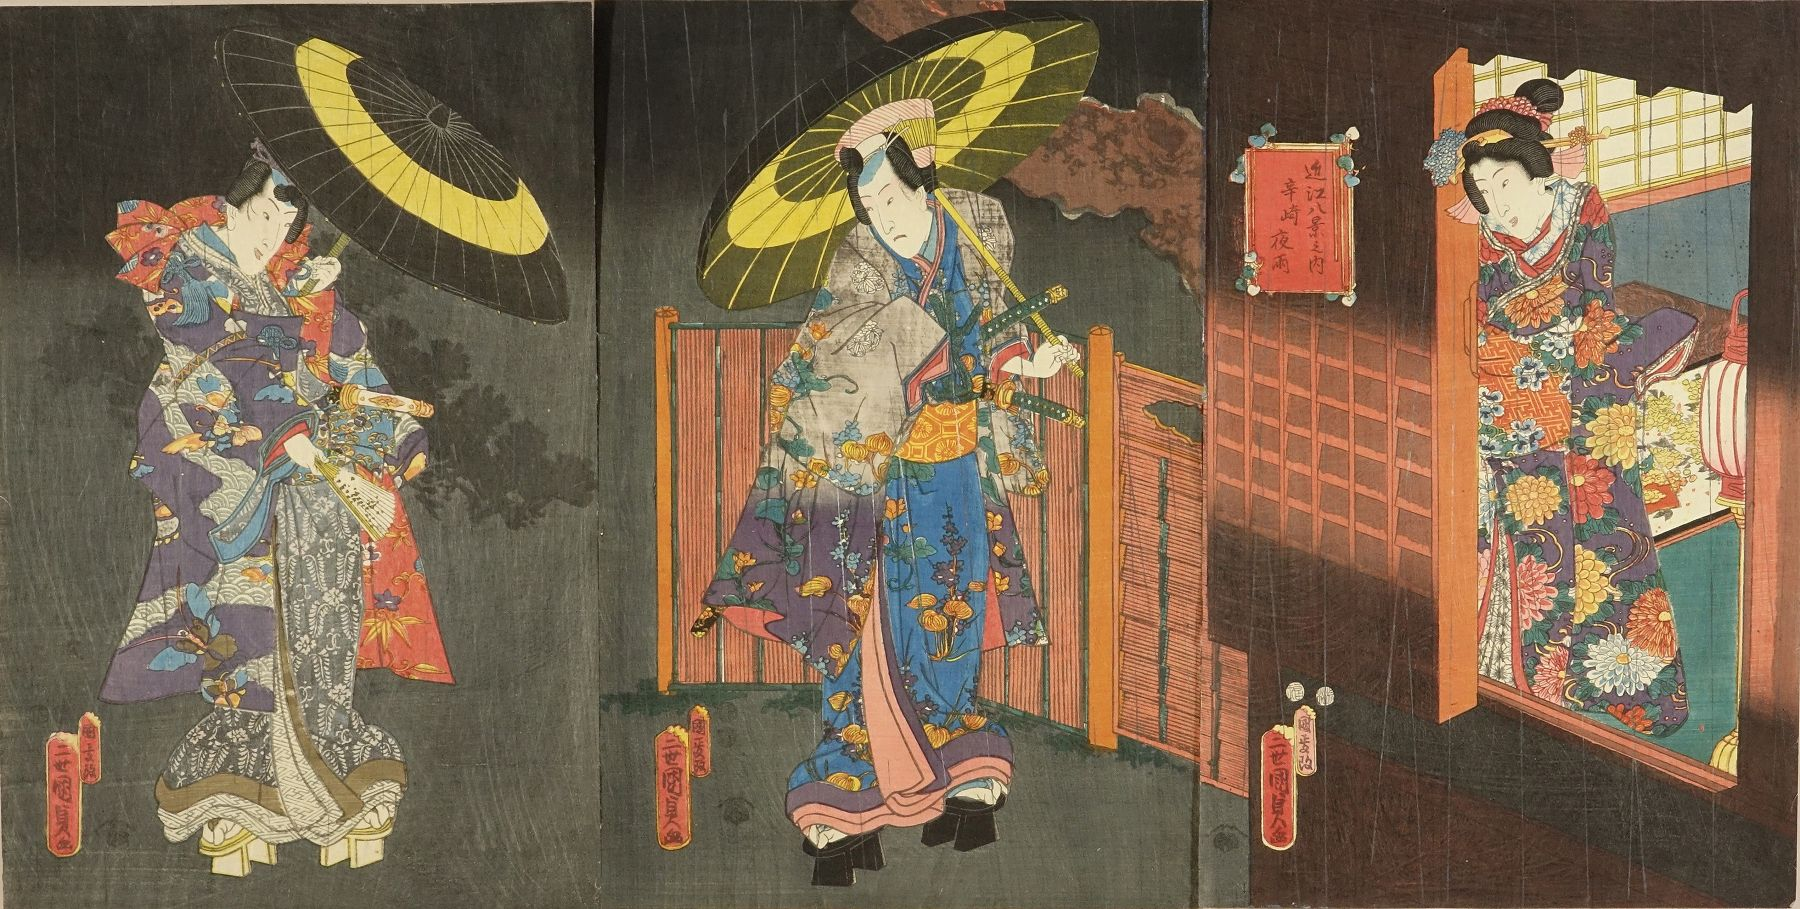 KUNISADA II <i>Karasaki yau</i> (Night rain at Karasaki), from <i>Omi hakkei no uchi</i> (Eight view of Lake Biwa)